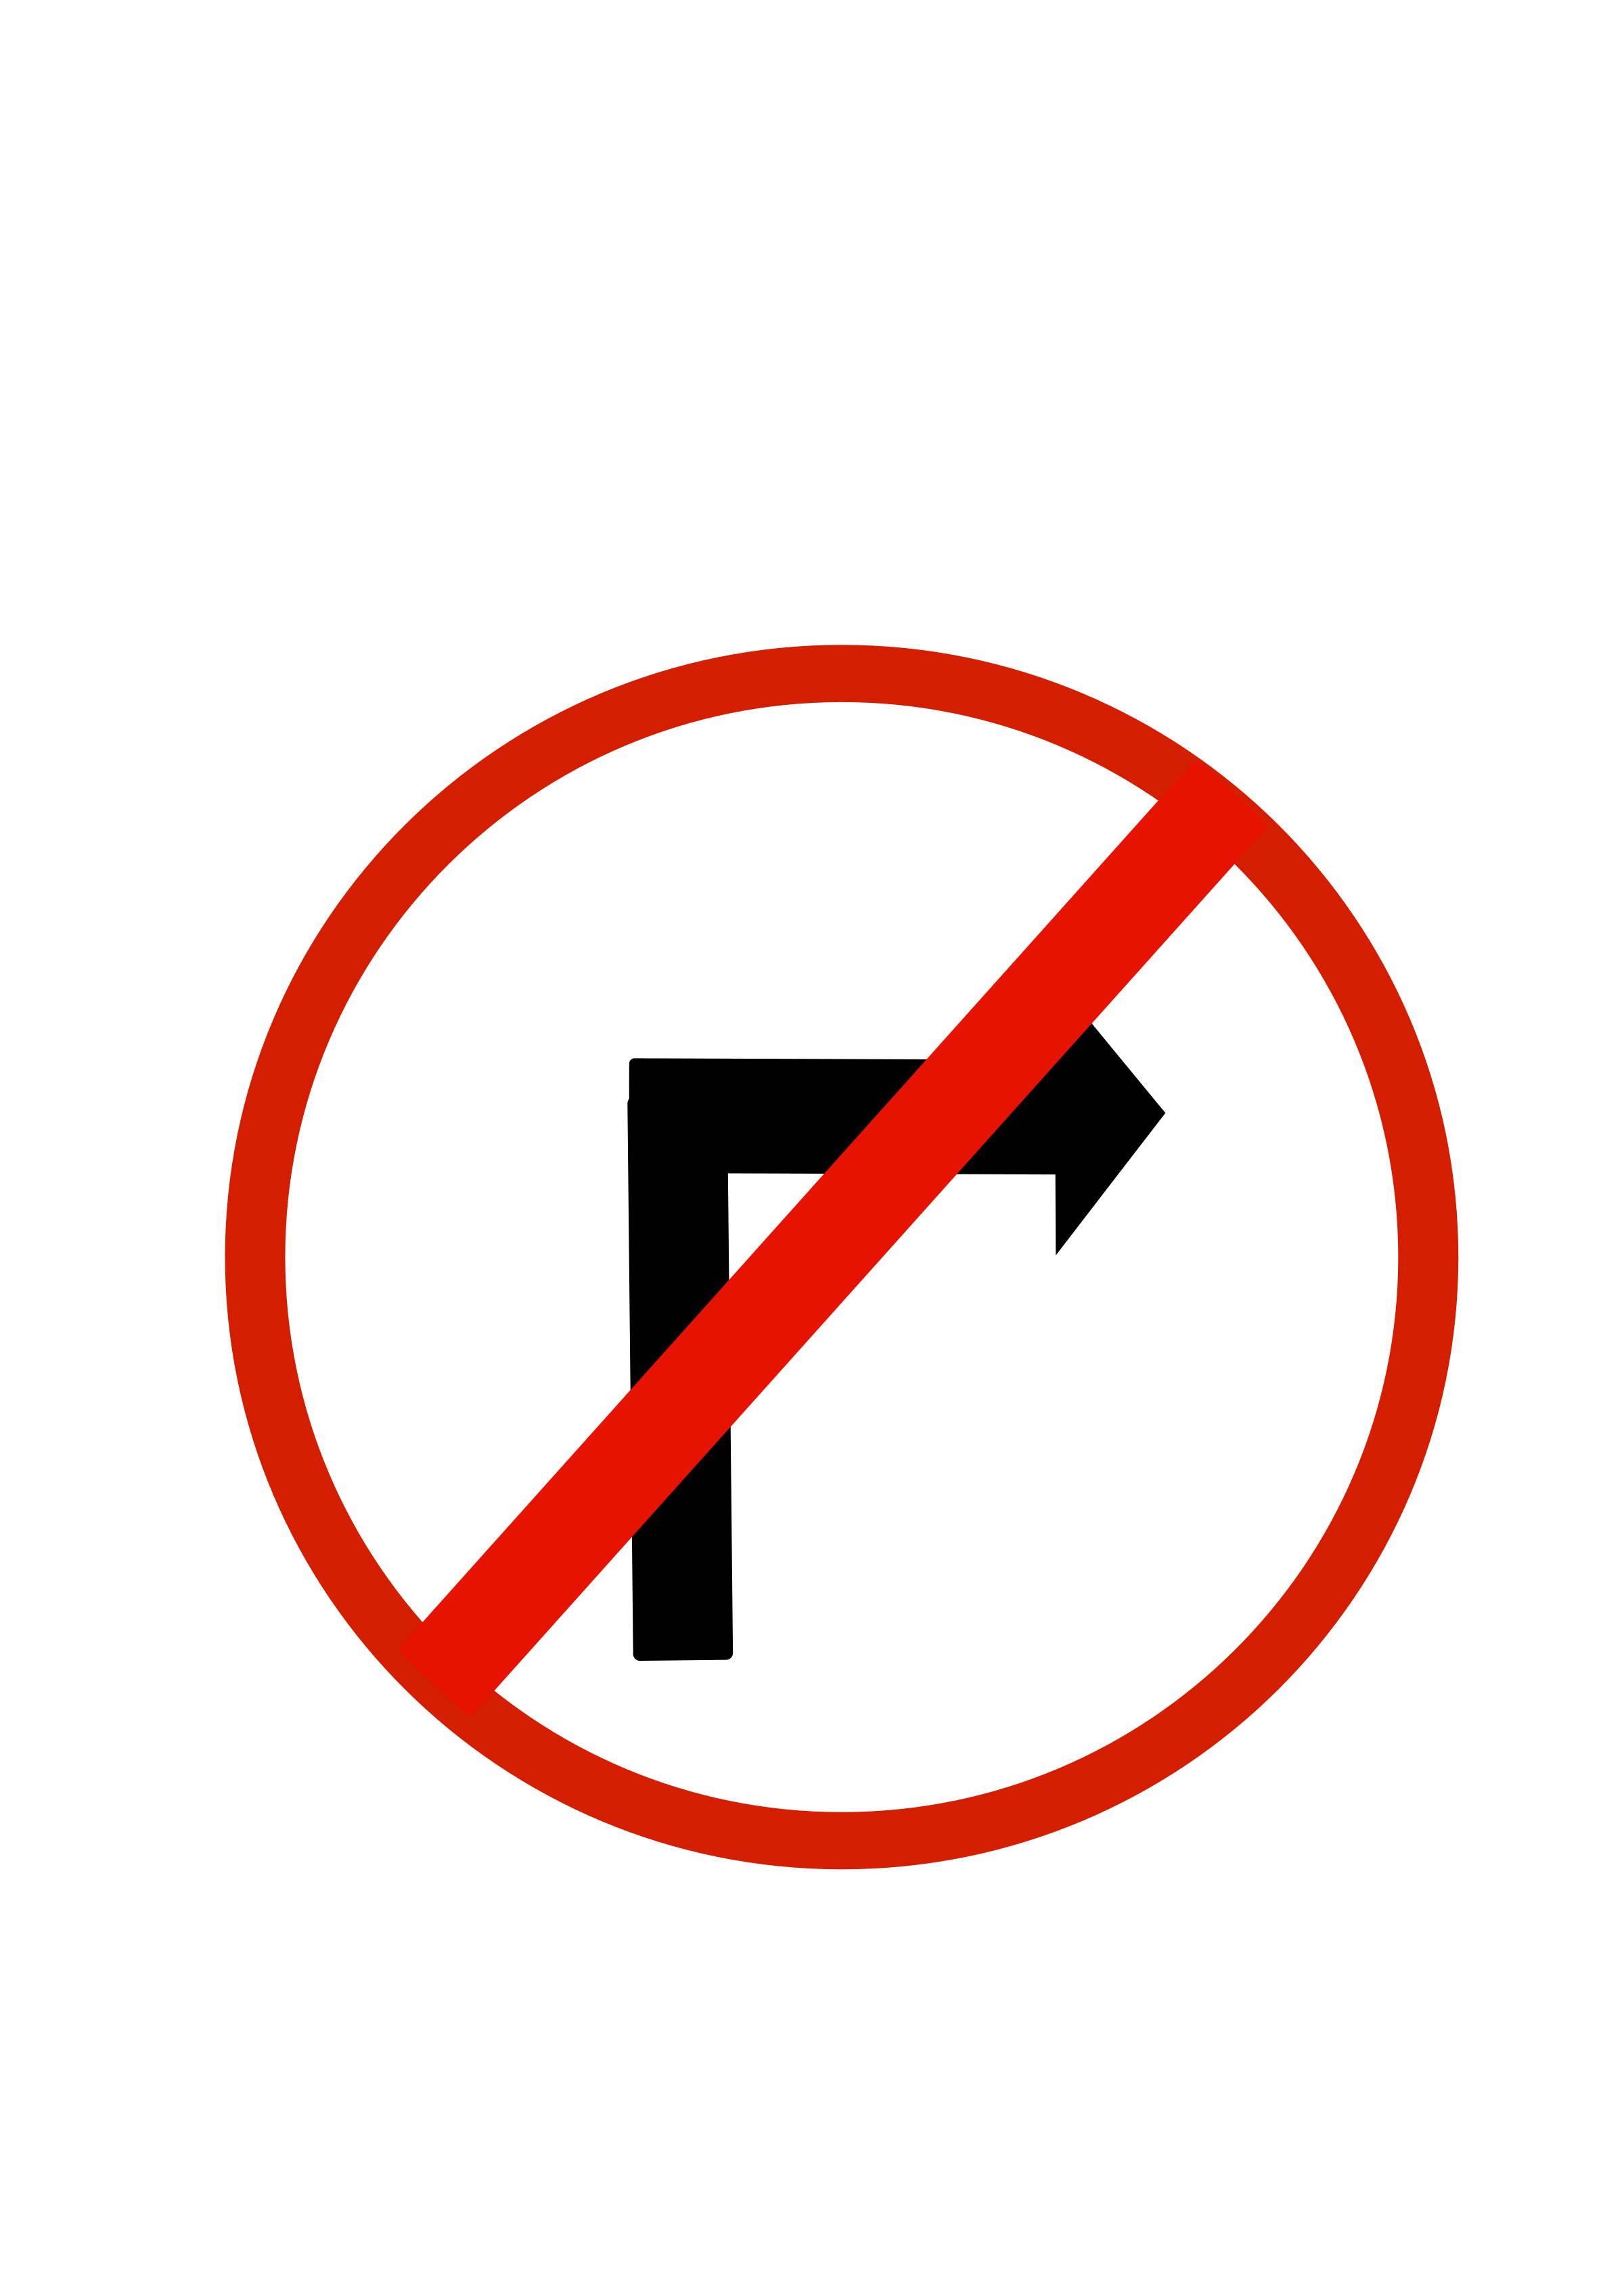 Indian road sign - Right turn prohibited